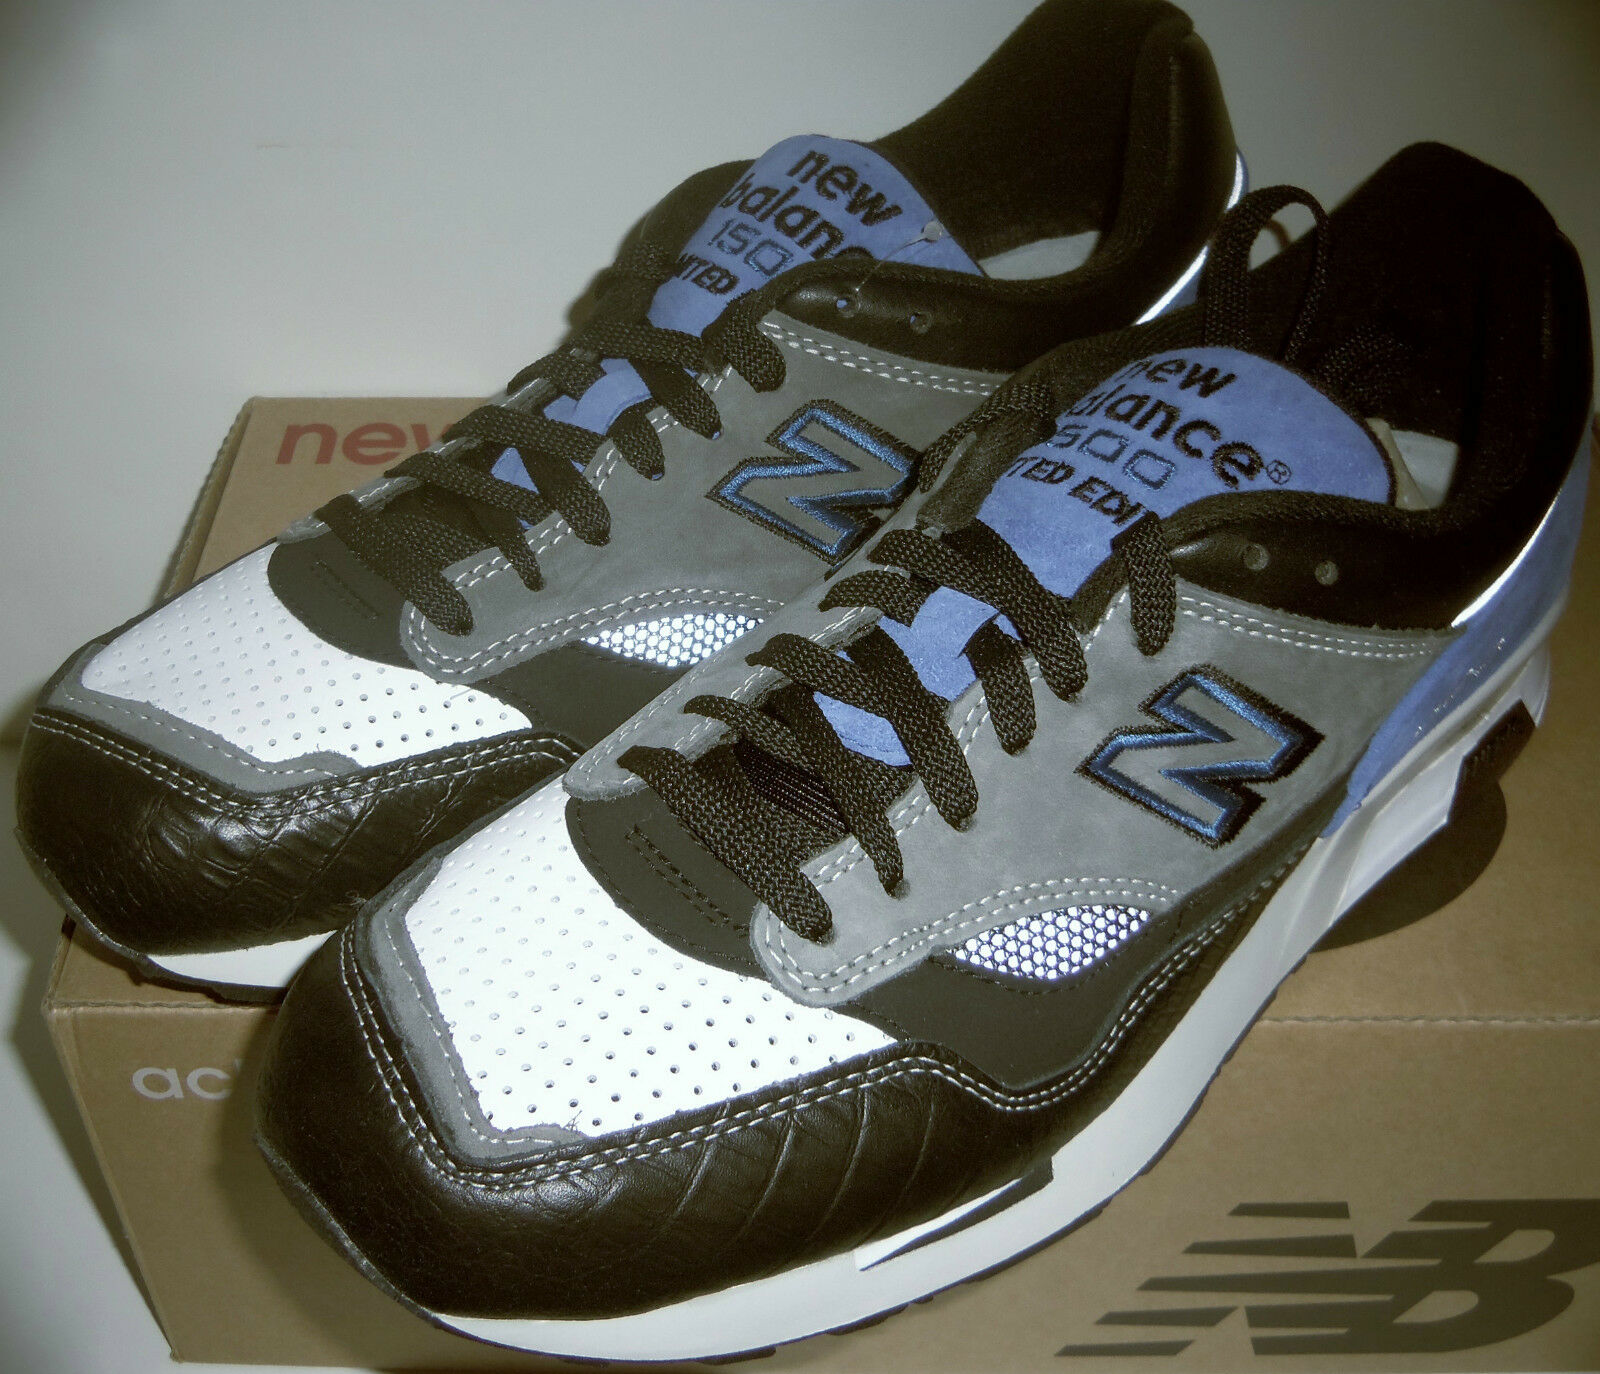 NEW BALANCE 1500 BLACK/GRAY LTD limited edition RUNNING SHOES MENS 10